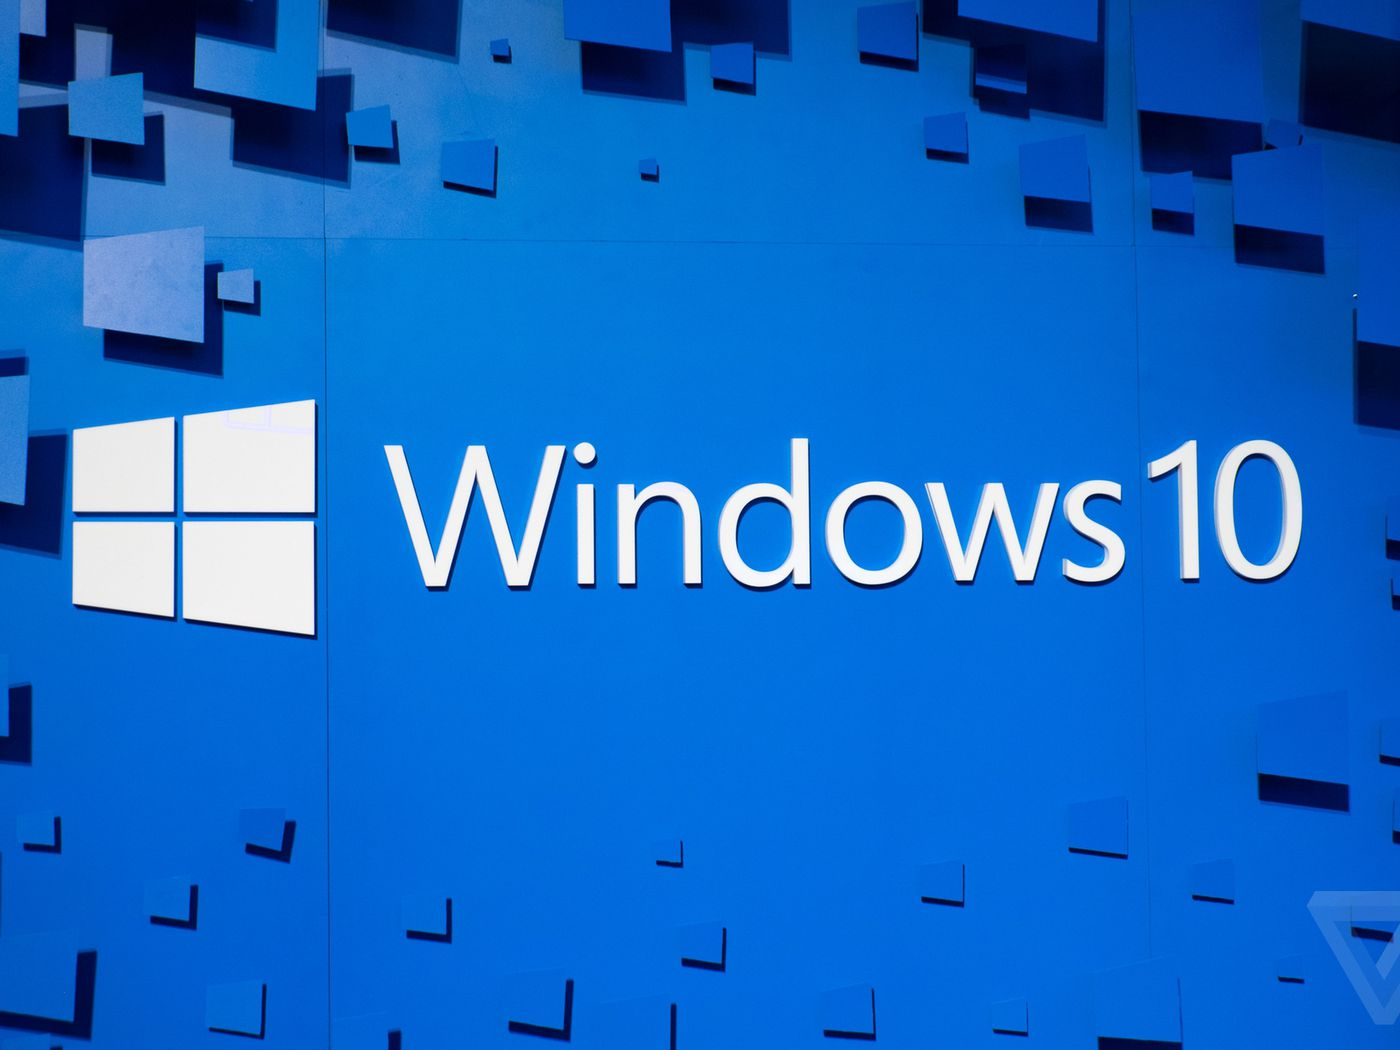 Upgrade from Windows 7 to Windows 10 in cheap price